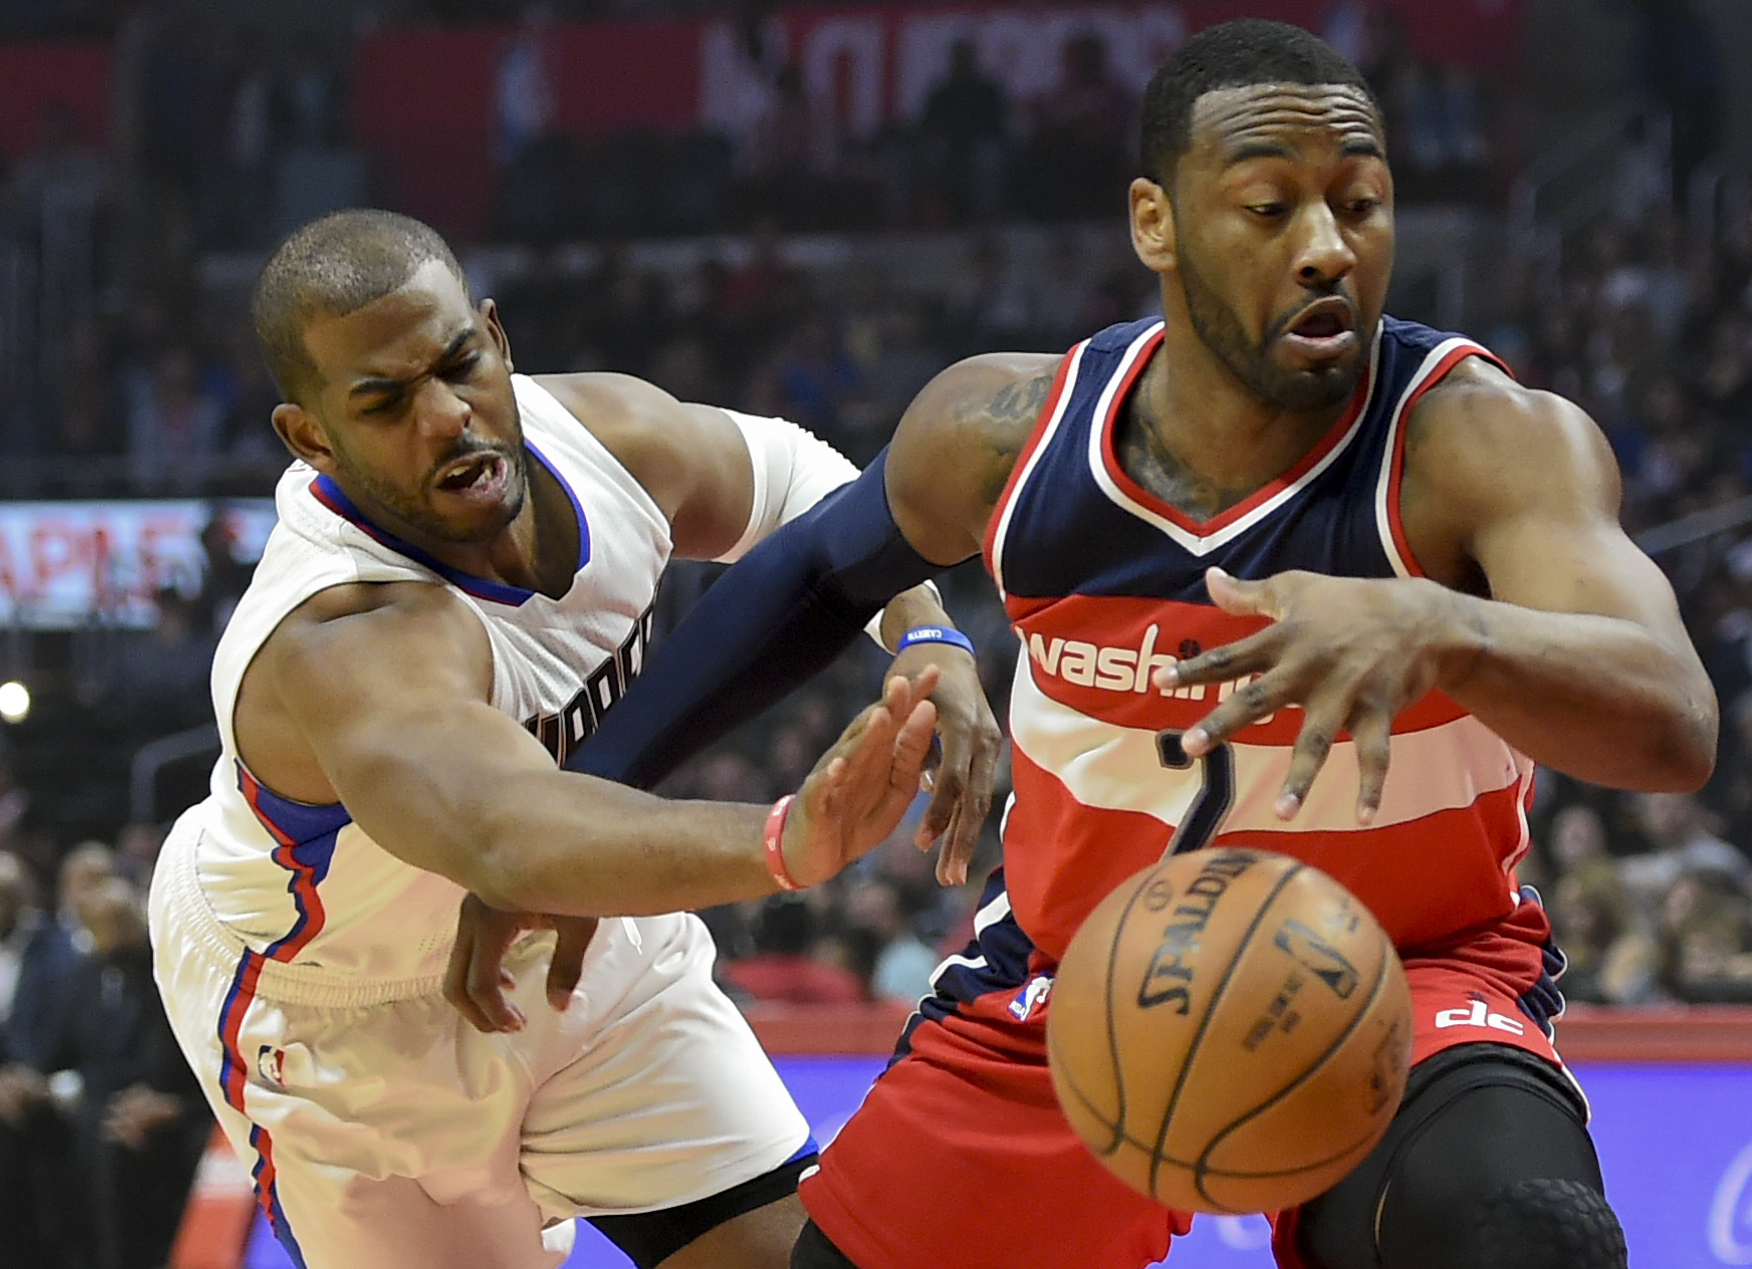 9980093-nba-washington-wizards-at-los-angeles-clippers